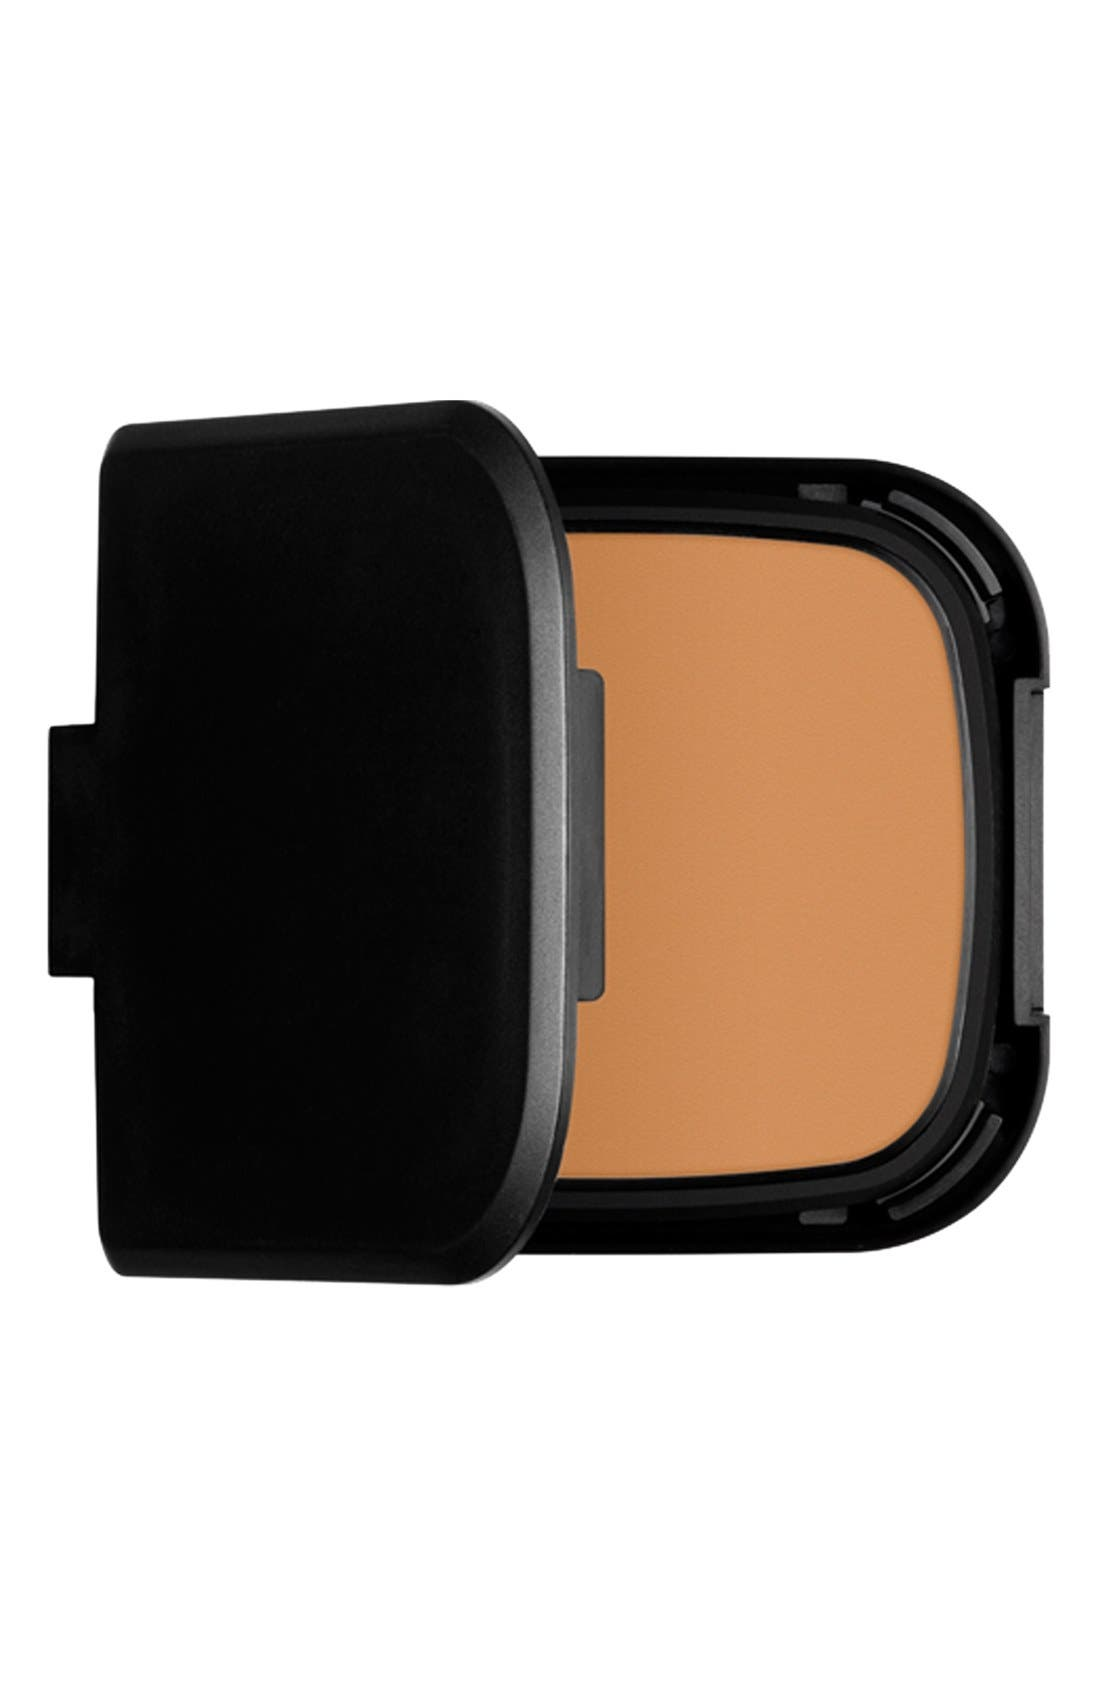 Radiant Cream Compact Foundation Refill,                             Main thumbnail 1, color,                             202